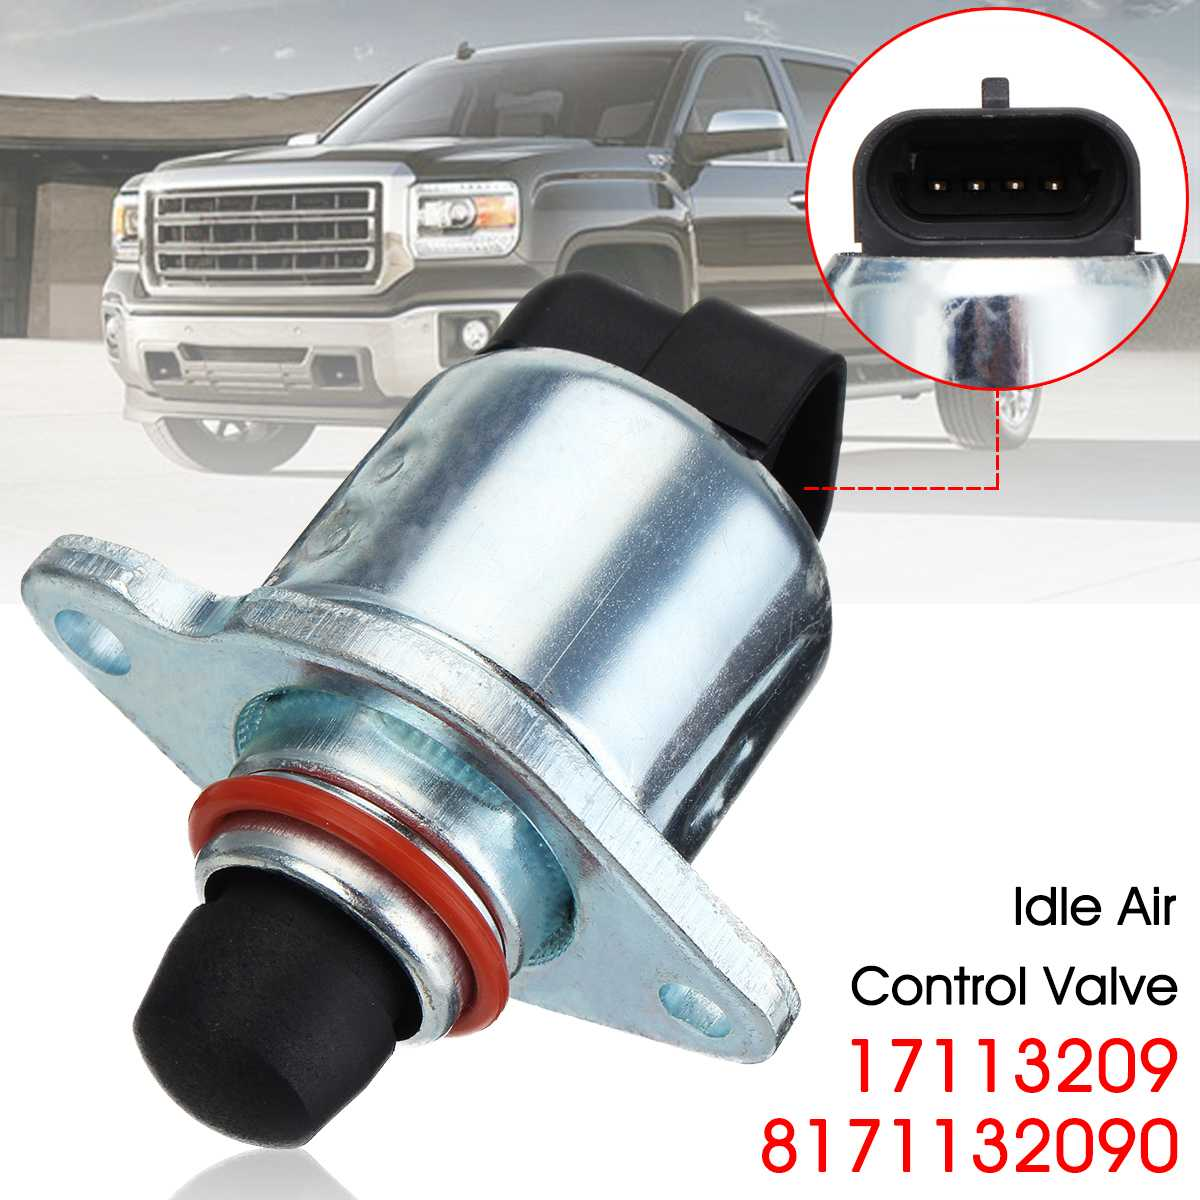 New Idle Air Control Valve For Chevy Express 1500 Van for GMC C1500 Truck 17113209 8171132090in